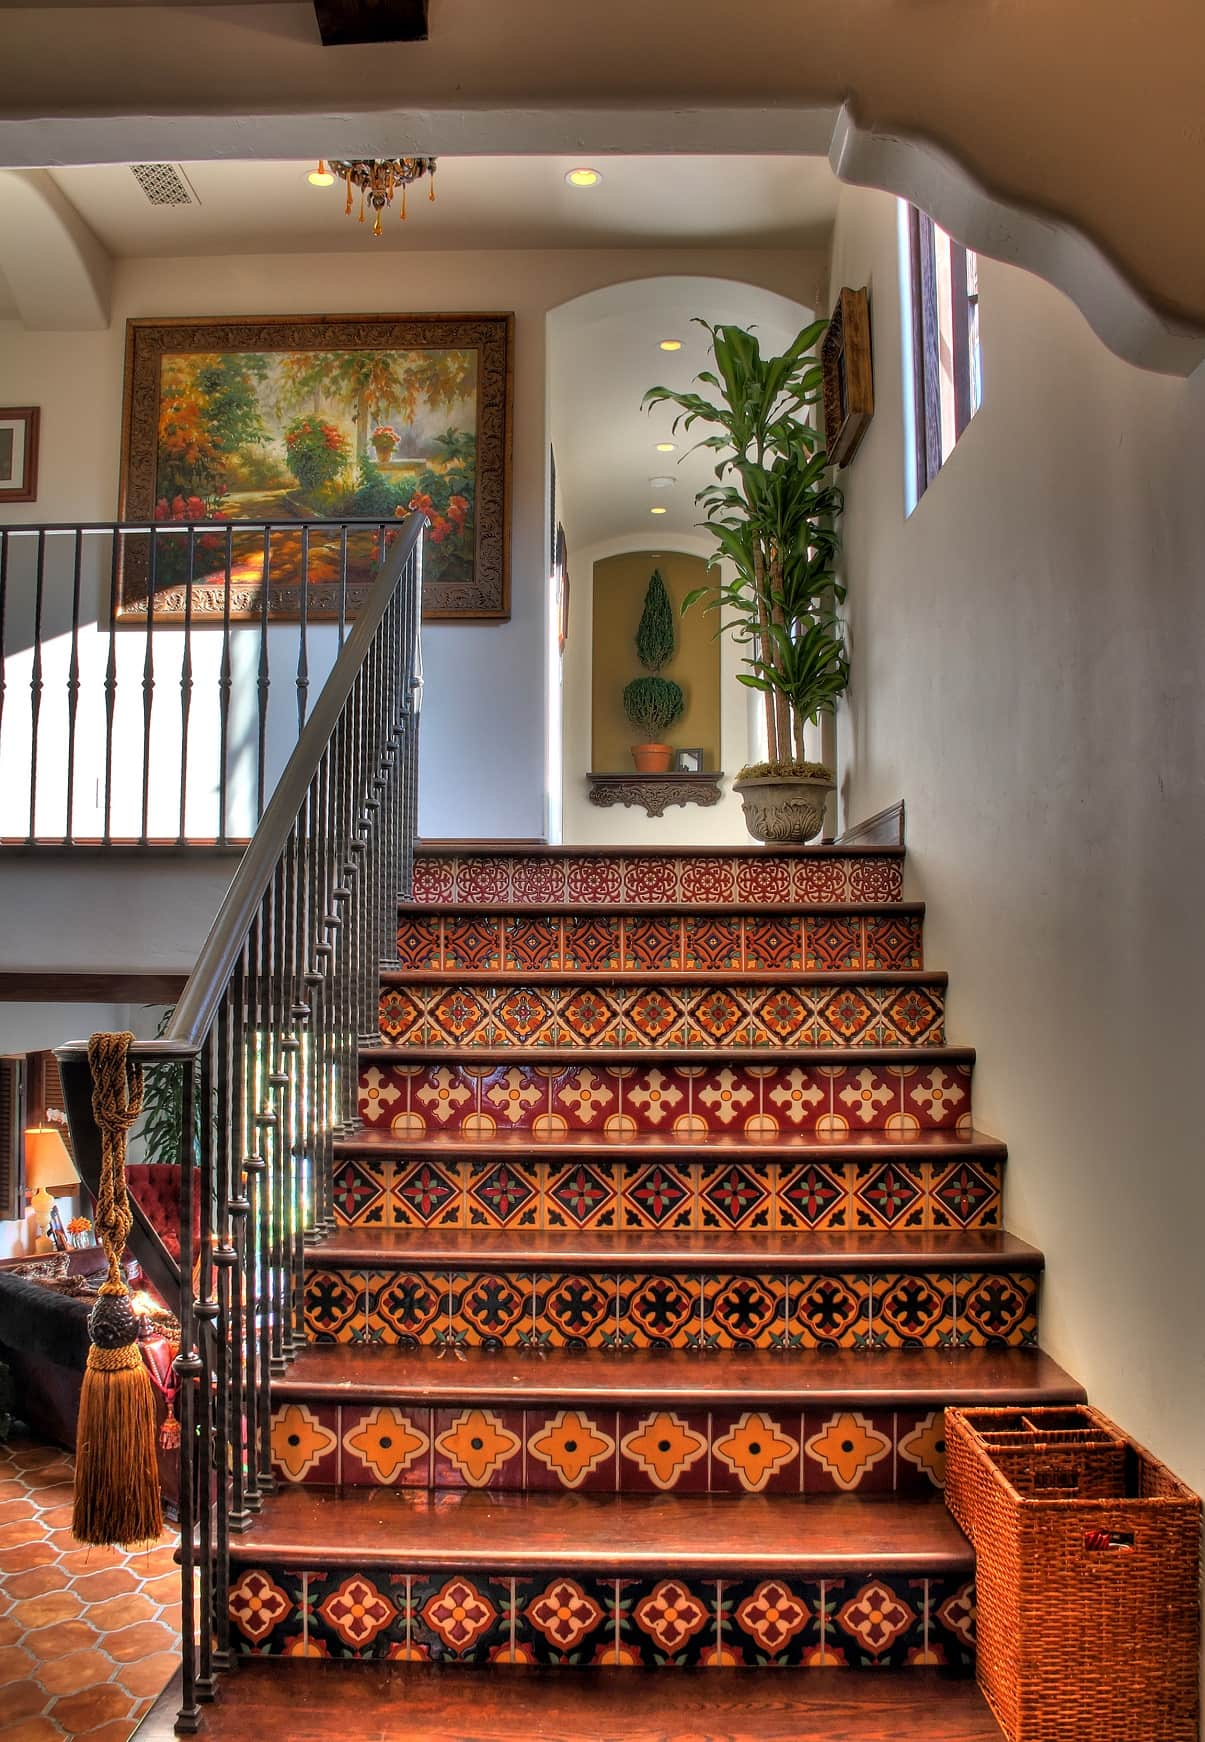 Spanish Interior Design Style Overview. Moroccan patterns on the tile to decorate the stairs